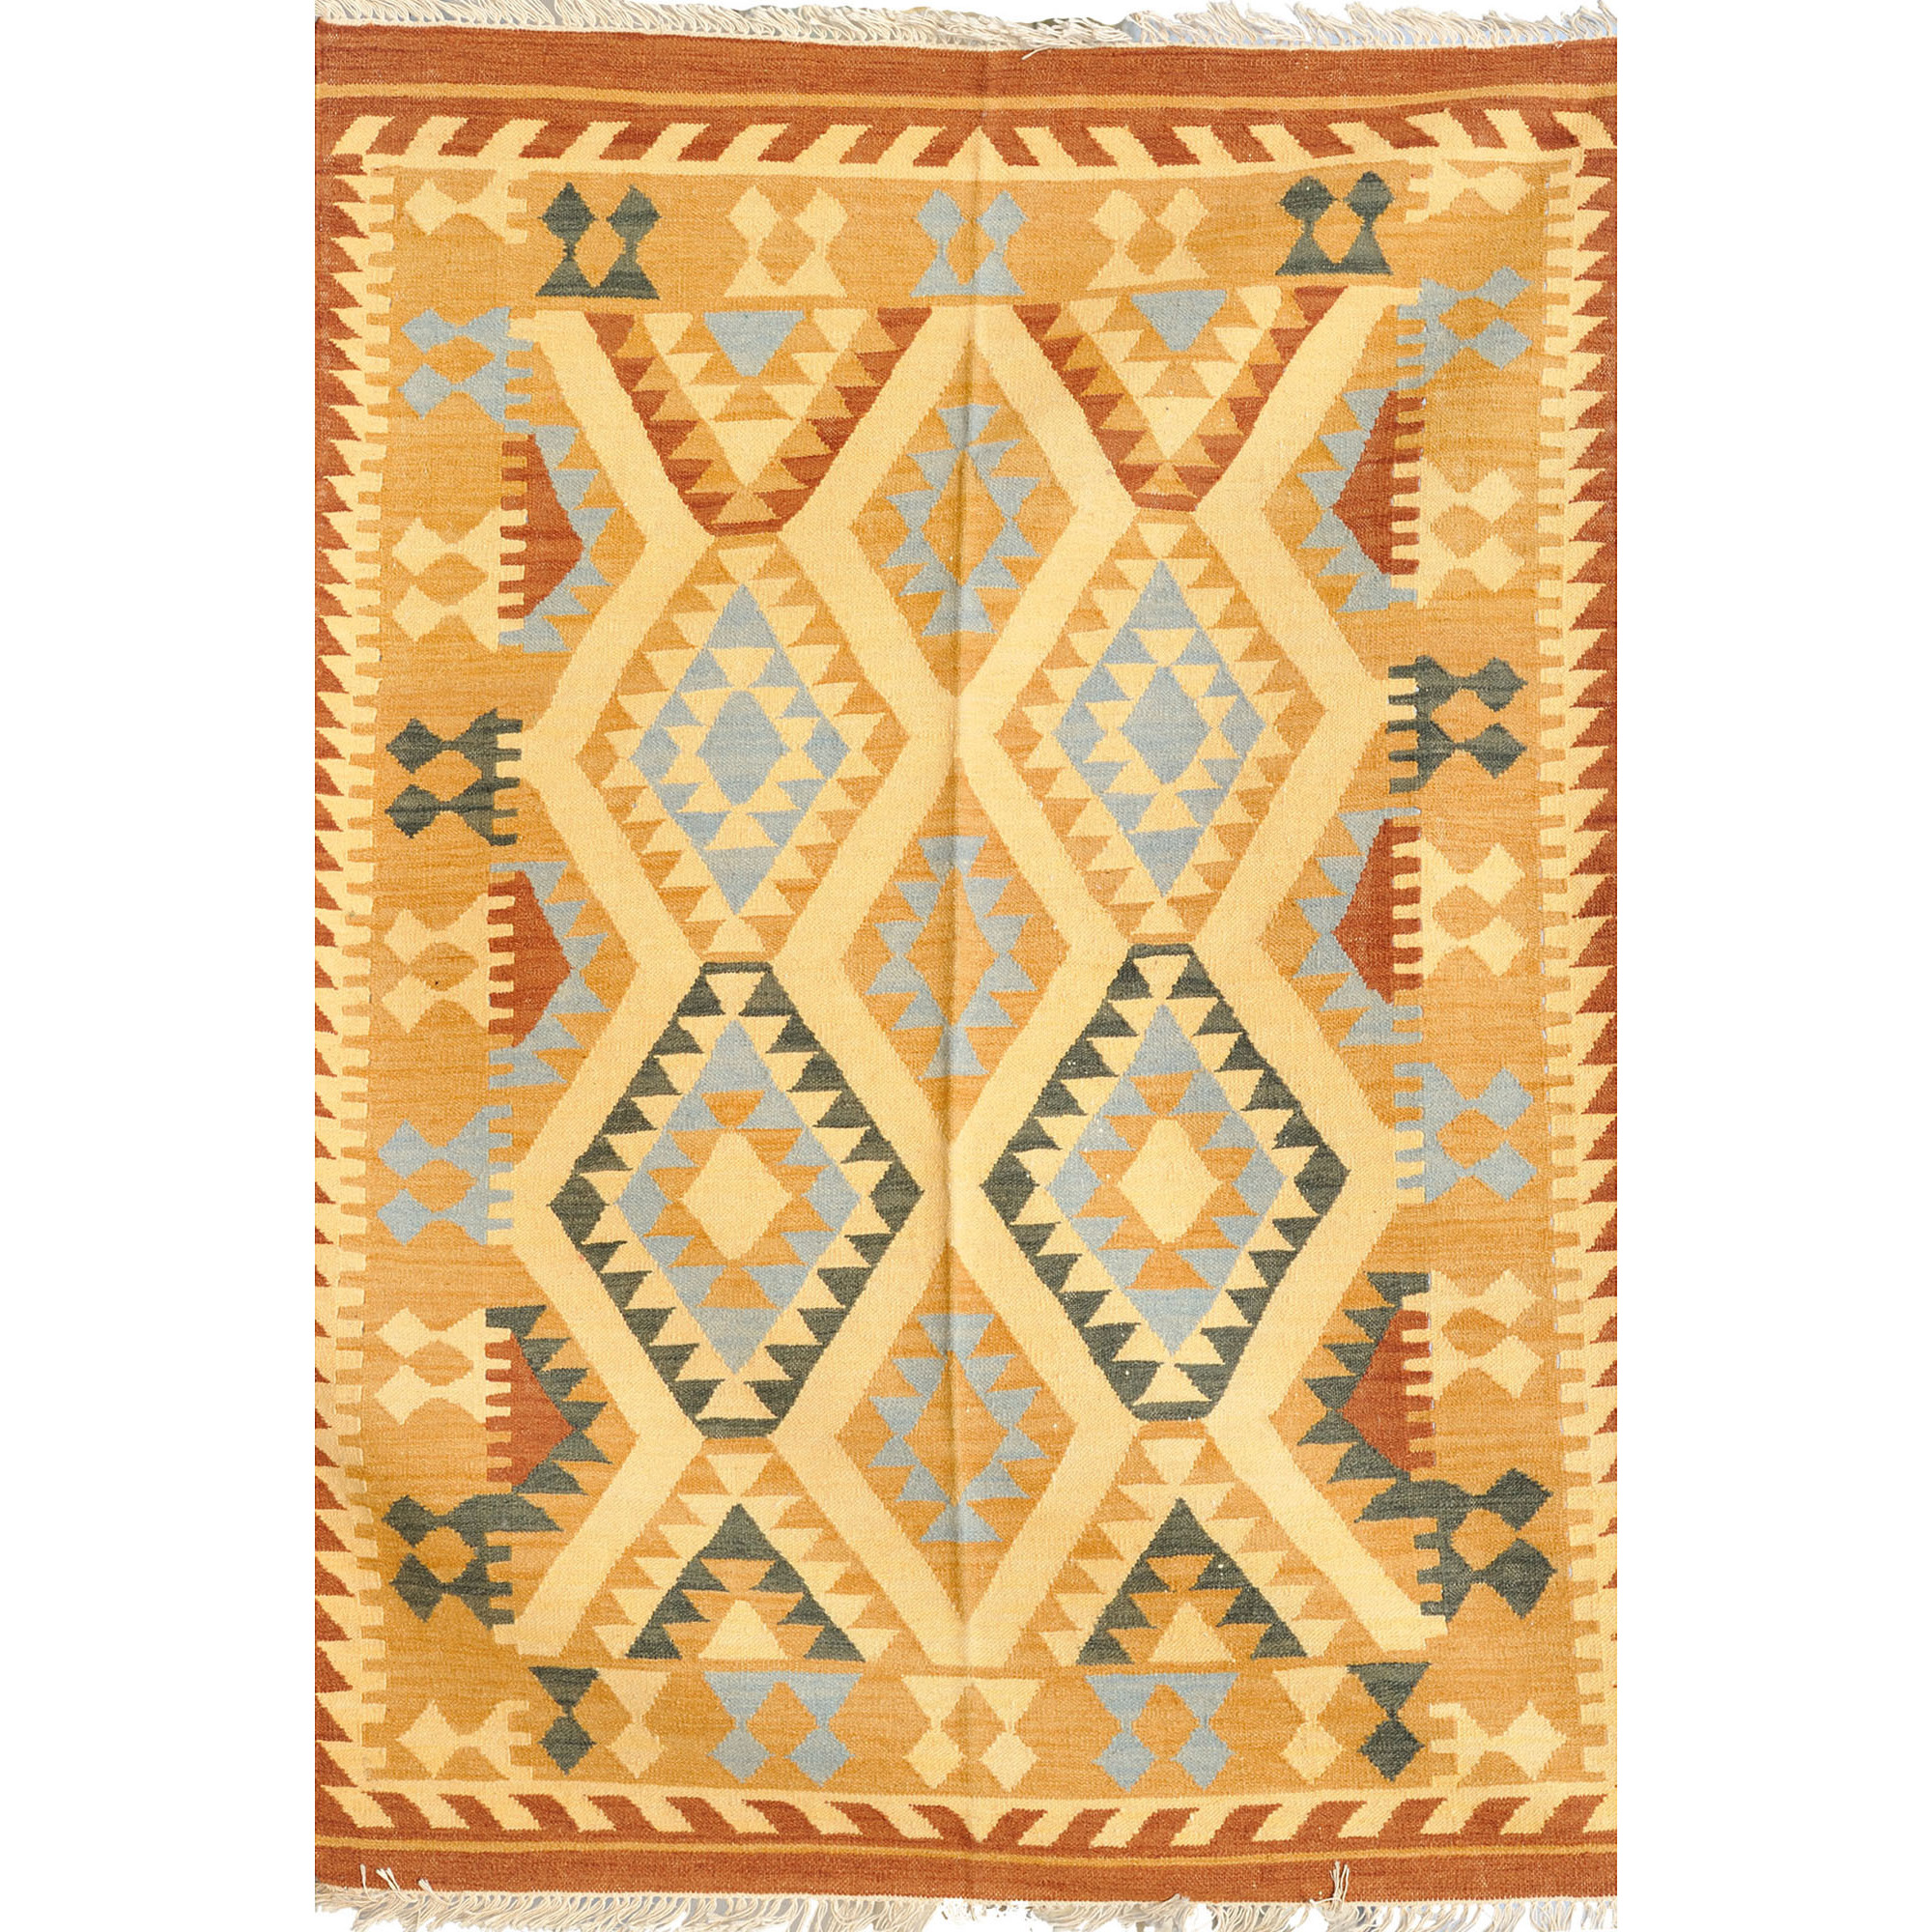 Beige Handloom Dhurrie from Sitapur with Kilim Motifs